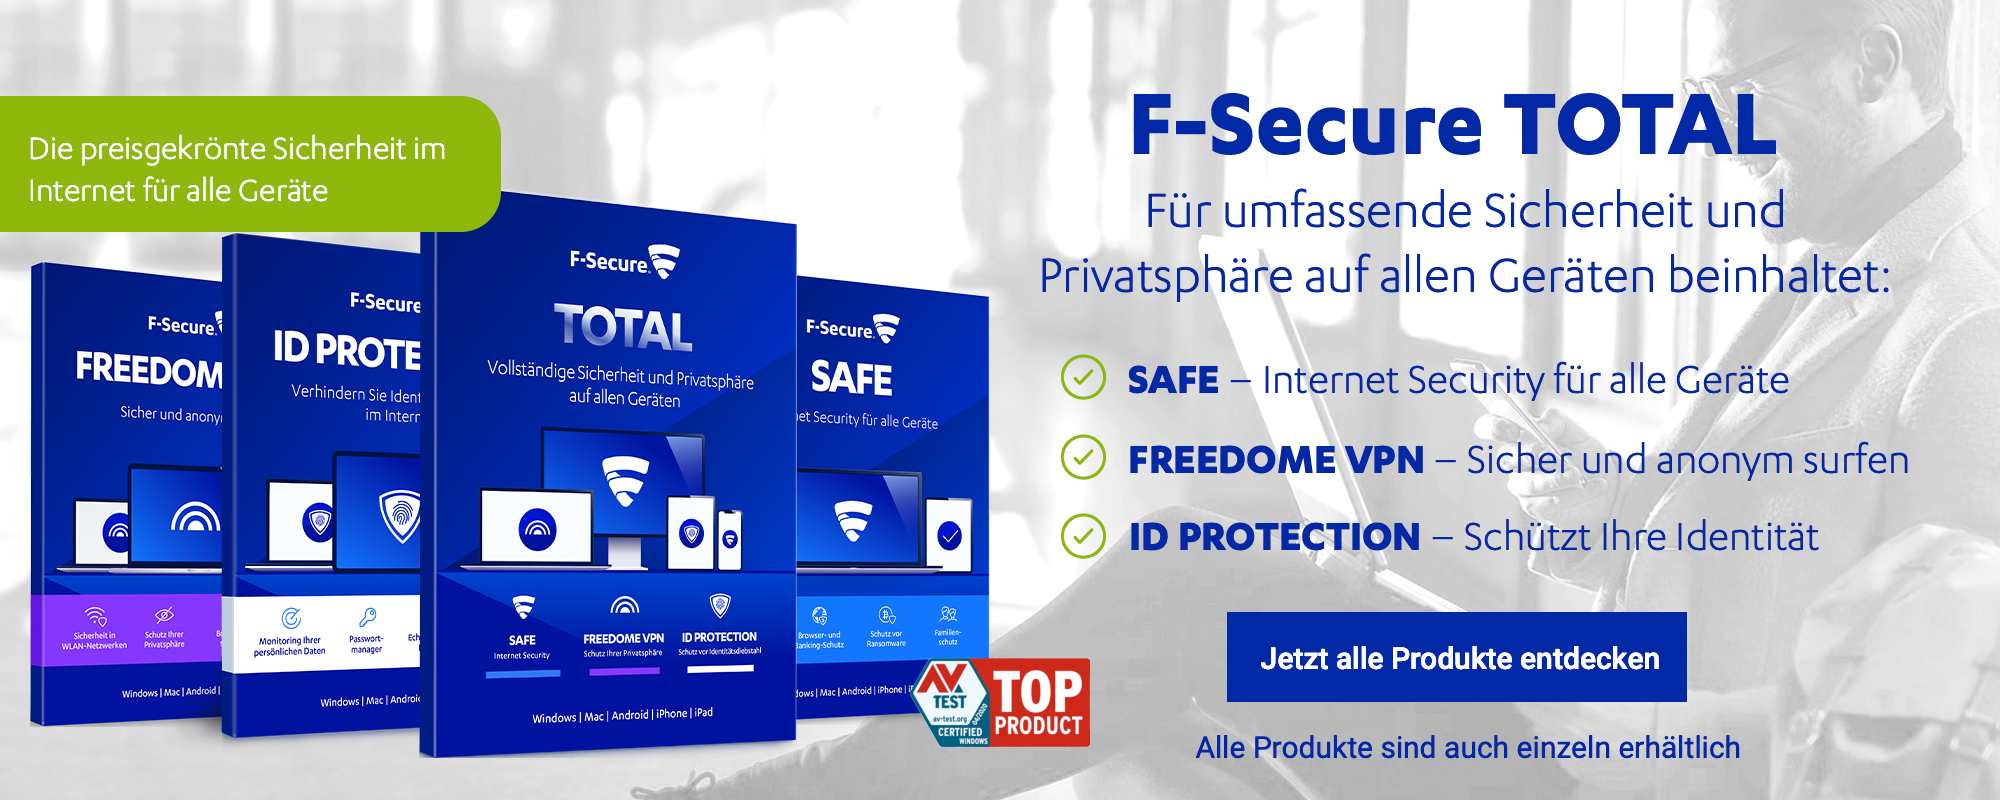 Mit F-Secure TOTAL schützen Sie alle Geräte: Anti-Virus, Internet Security, Freedome VPN, KEY Passwortmanager